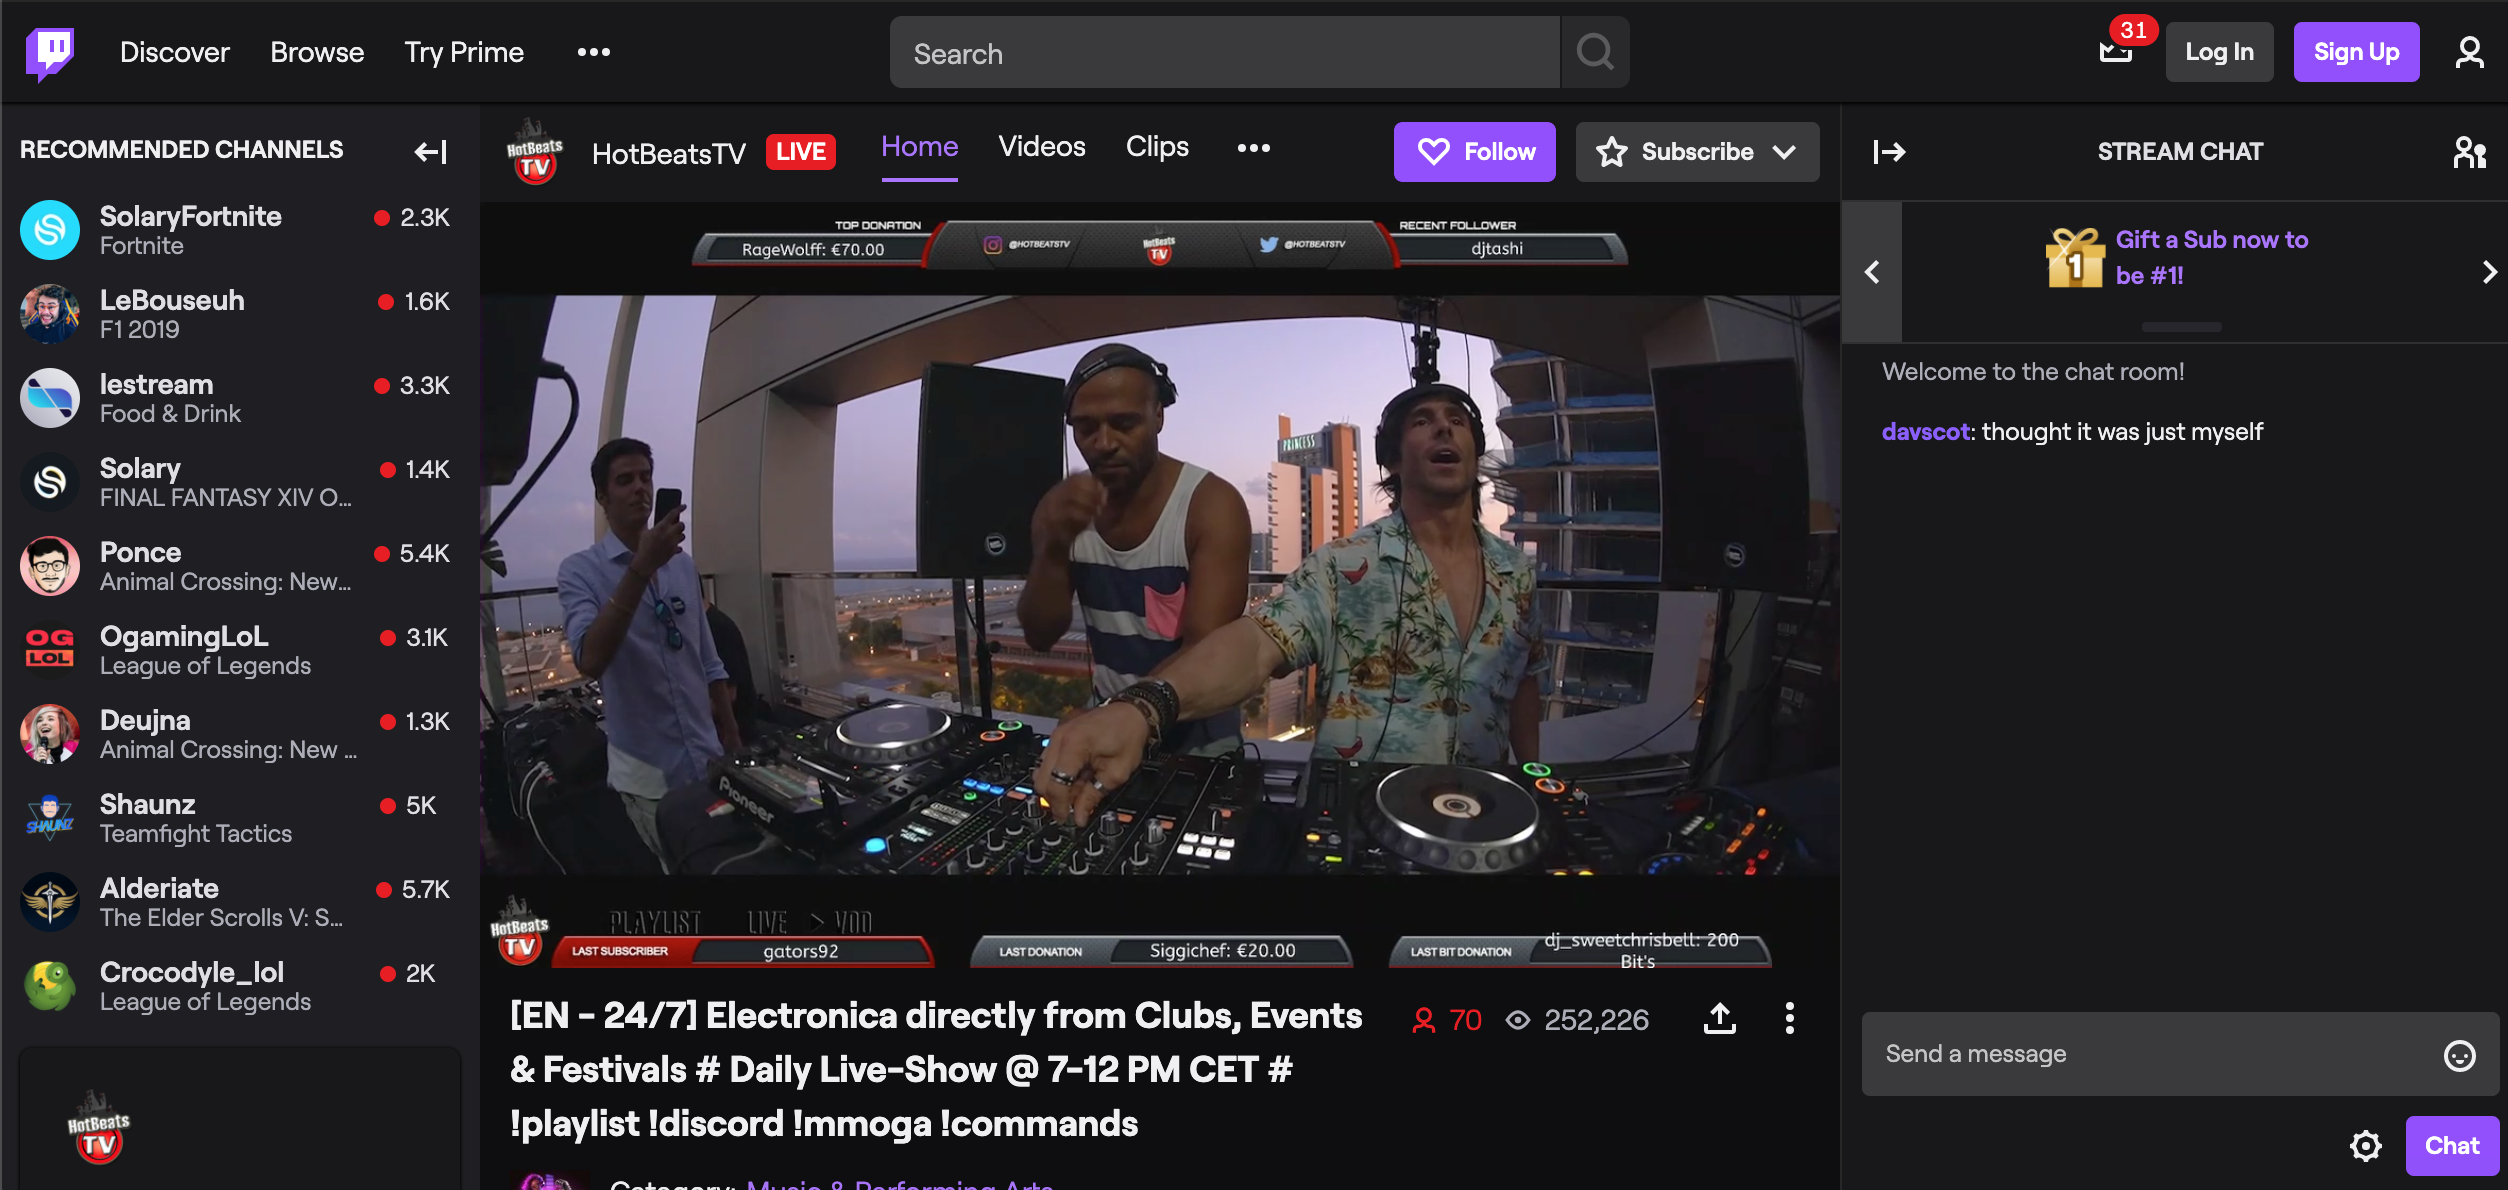 Live streaming session on Twitch, perfect during the confinement